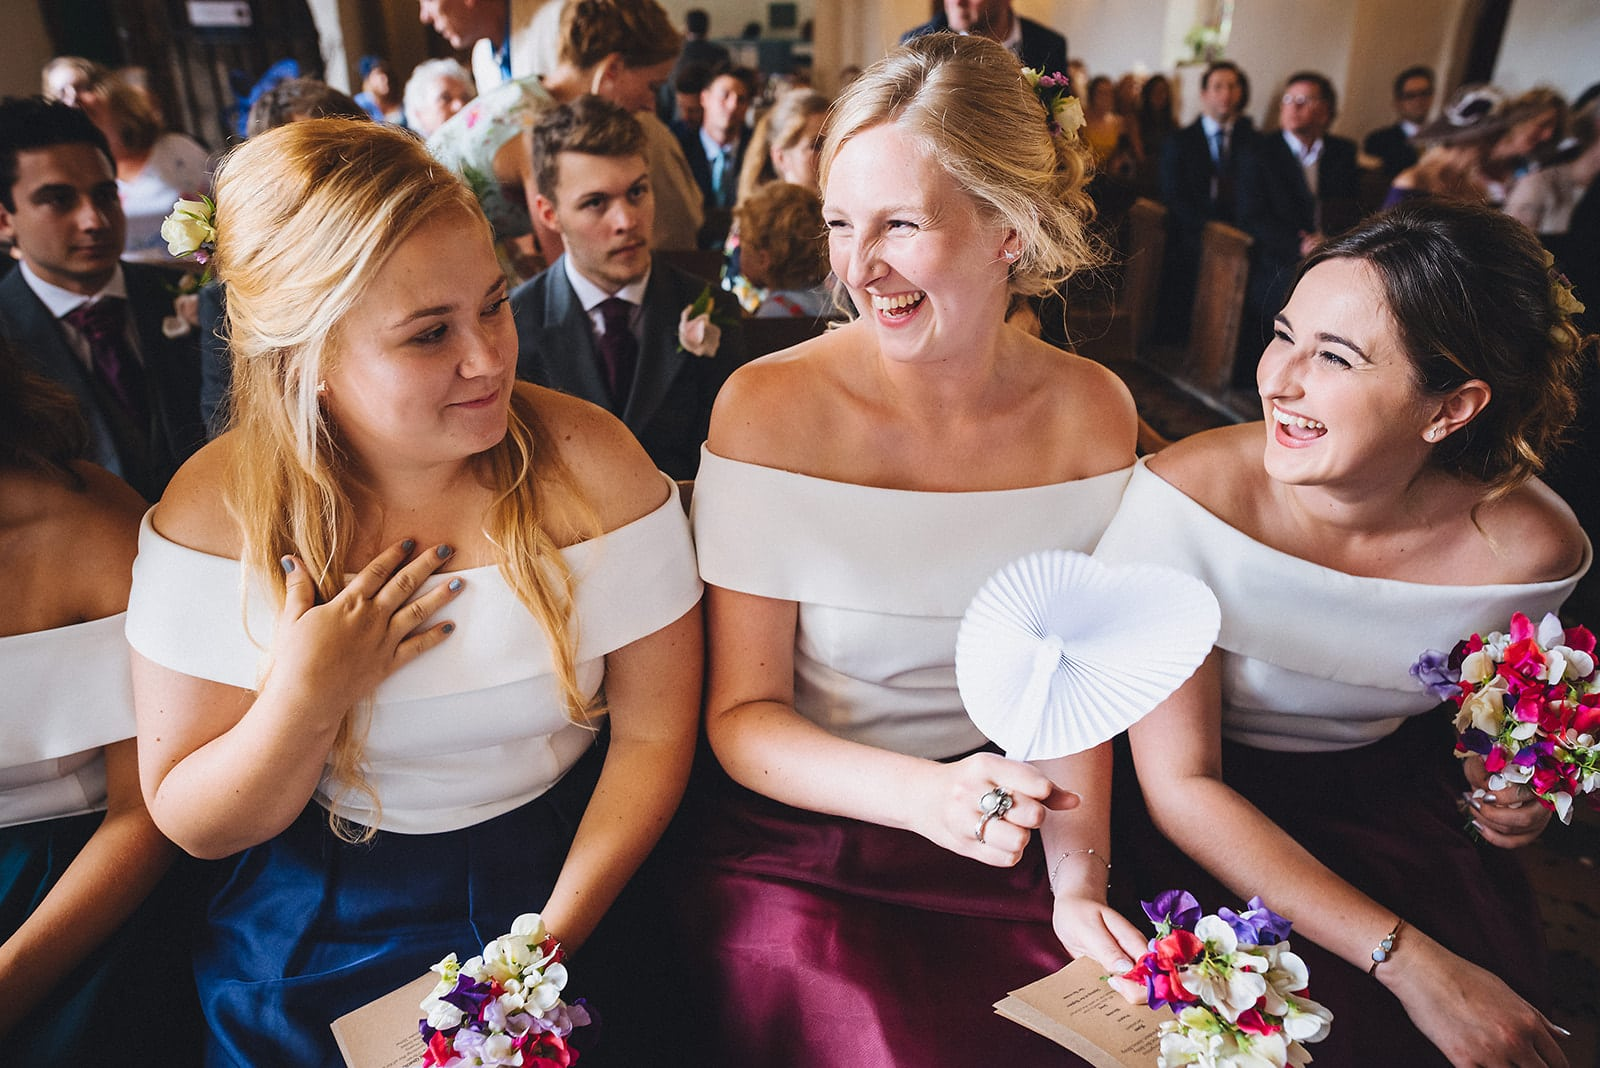 Bridesmaids smile emotionally at the end of the wedding ceremony